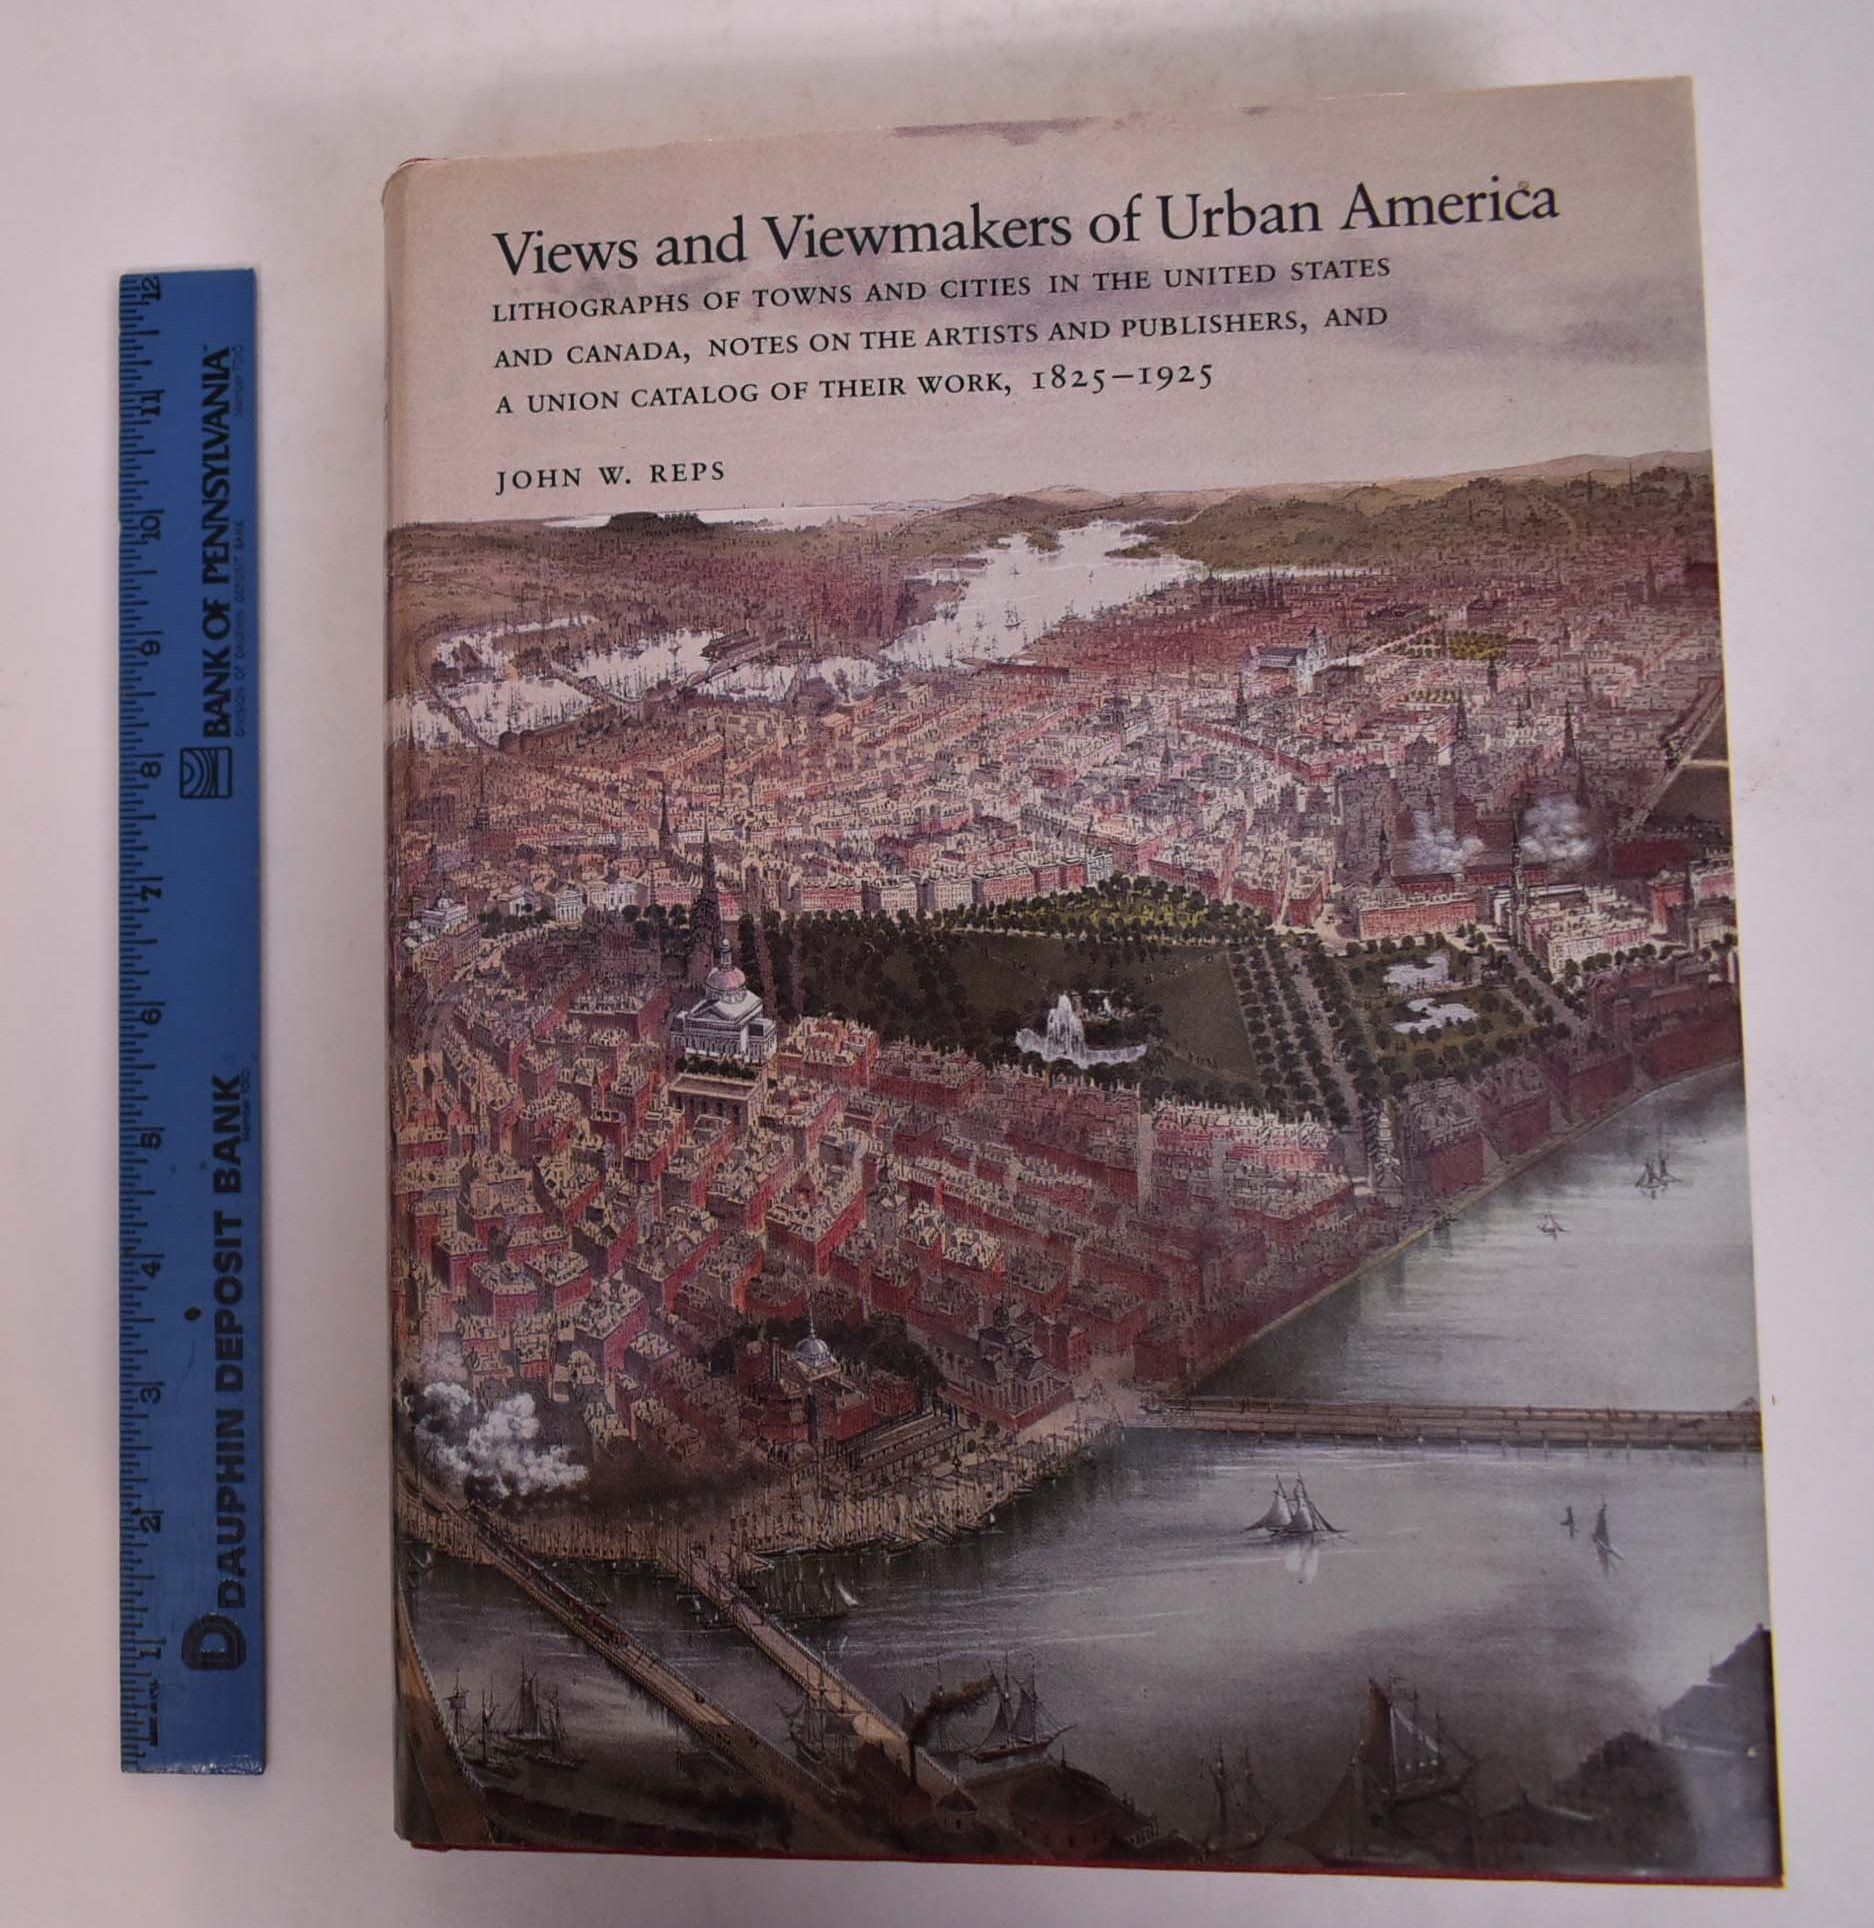 REPS, JOHN W. - Views and Viewmakers of Urban America: Lithographs of Towns and Cities in the United States and Canada, Notes on the Artists and Publishers, and a Union Catalog of Their Work, 1825-1925